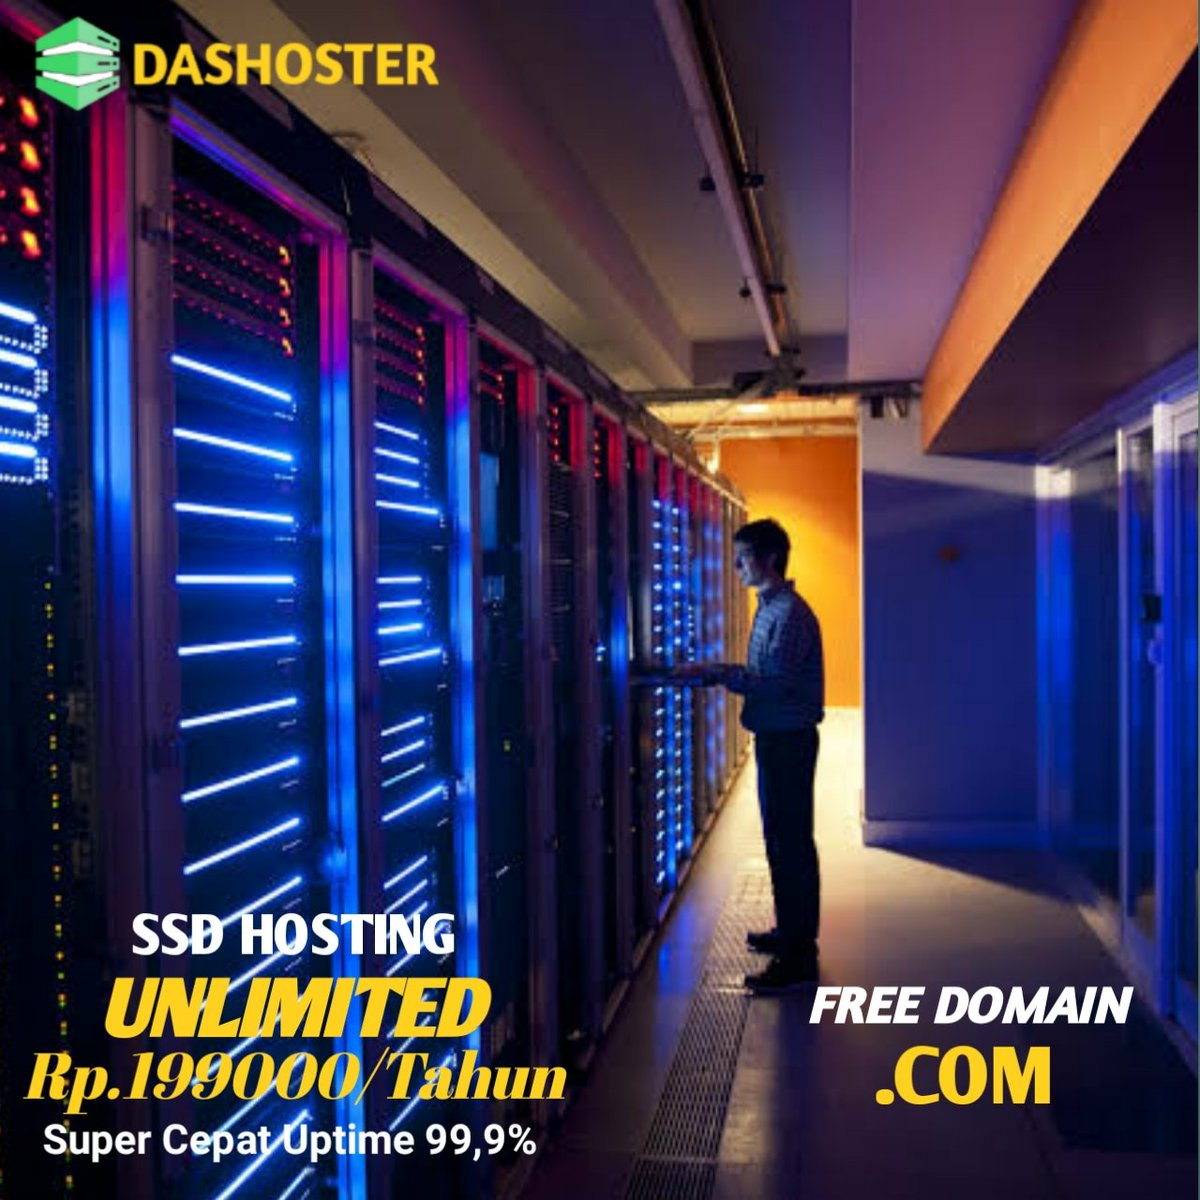 Dashoster Com على تويتر Harga Promo Ssd Hosting Unlimited Pertahun Free Domain Com Ssdhosting Unlimited Hosting Hostingunlimited Hostingmurah Domaingratis Freedomain Hostinggratis Https T Co Ri0gxc2e43